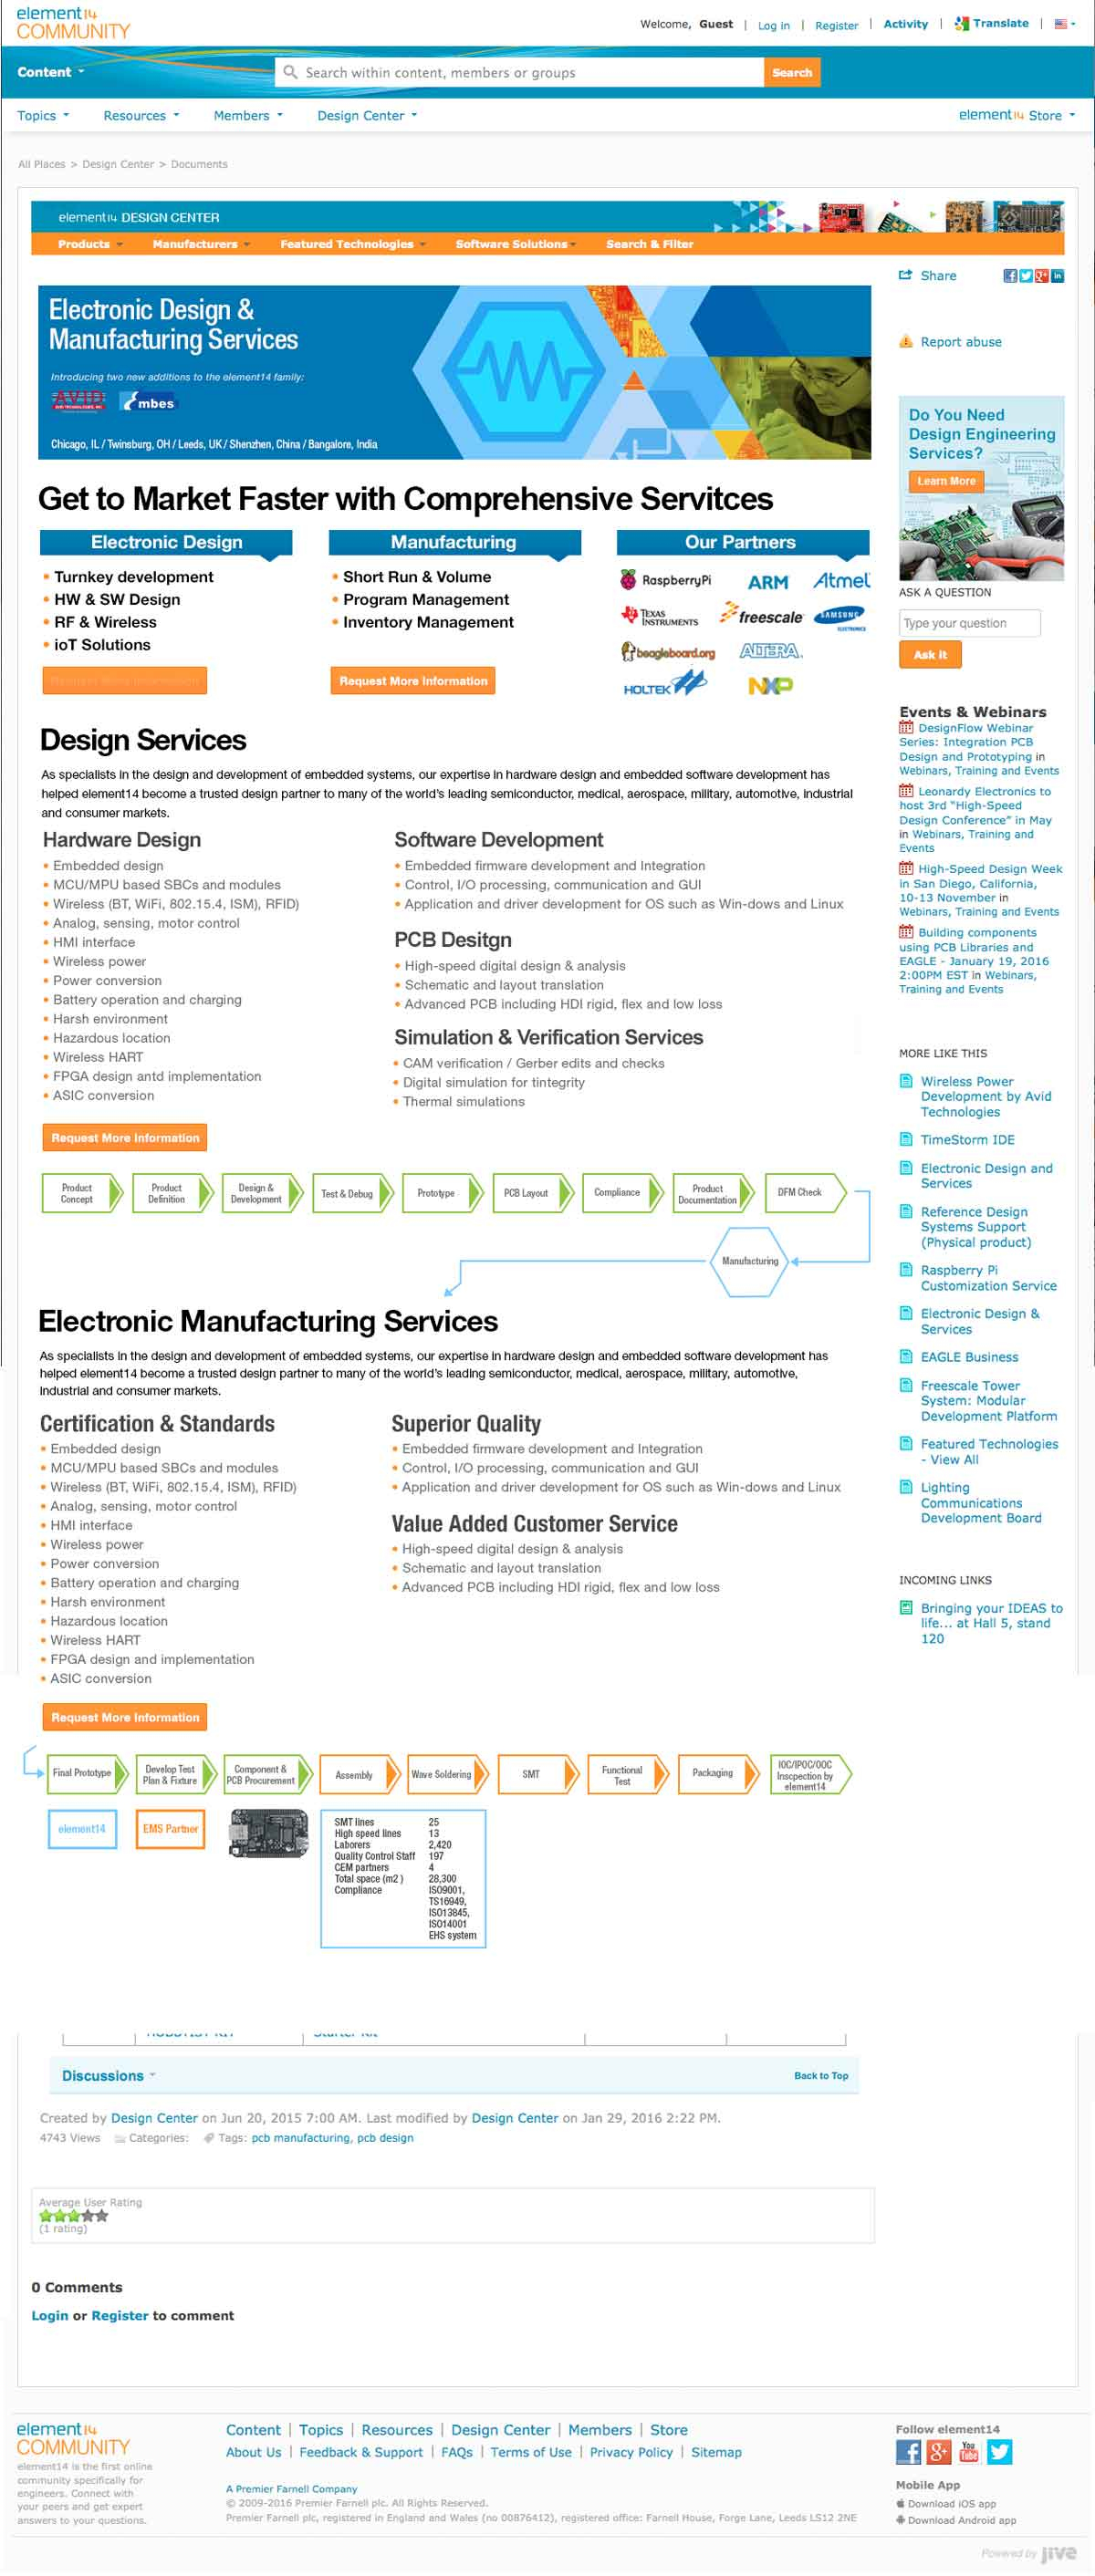 element14 Design and Custom Manufacturing Services Page Desigp